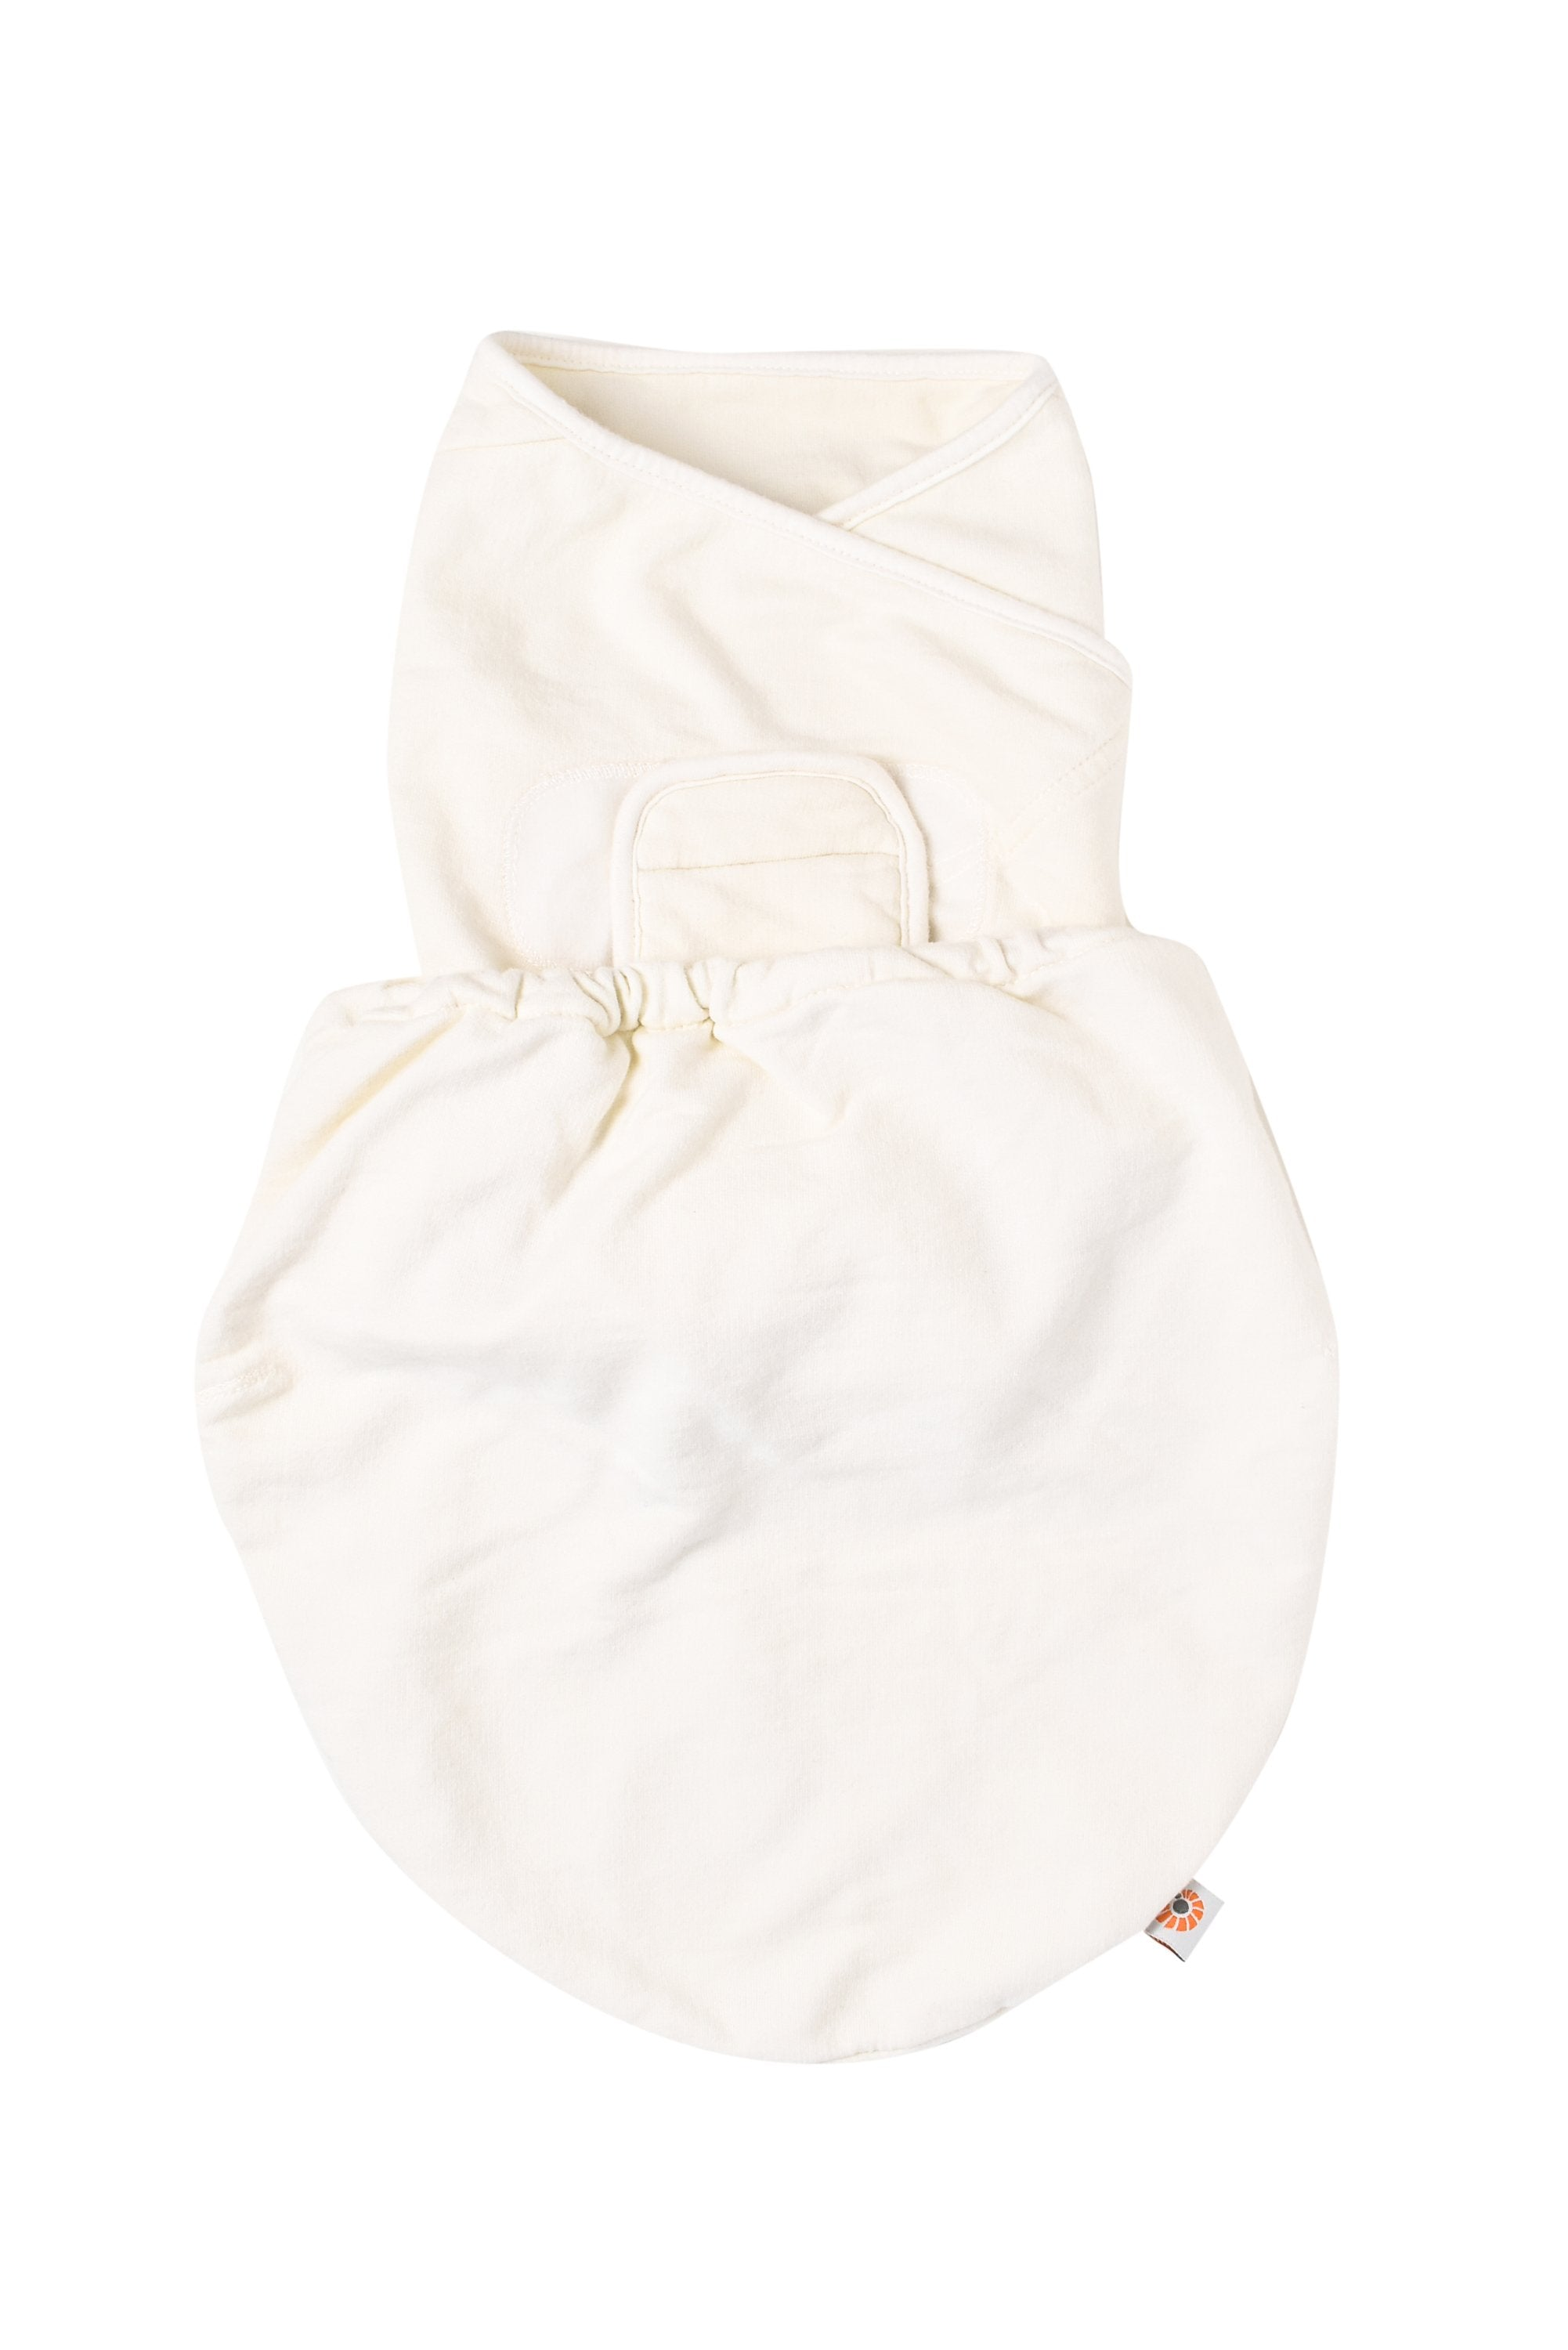 10026027 Ergobaby Baby~Swaddle S/M at Retykle